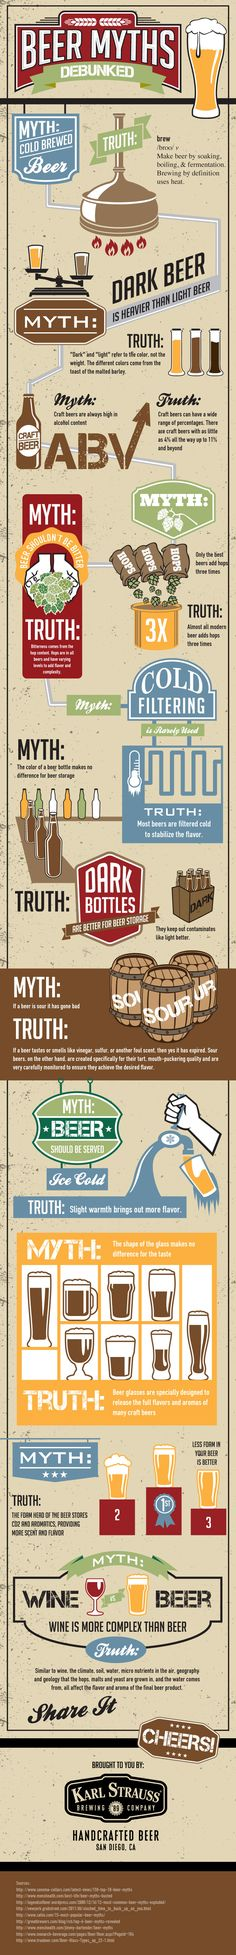 Beer myths debunked #CraftBeer #Beer #Infographic